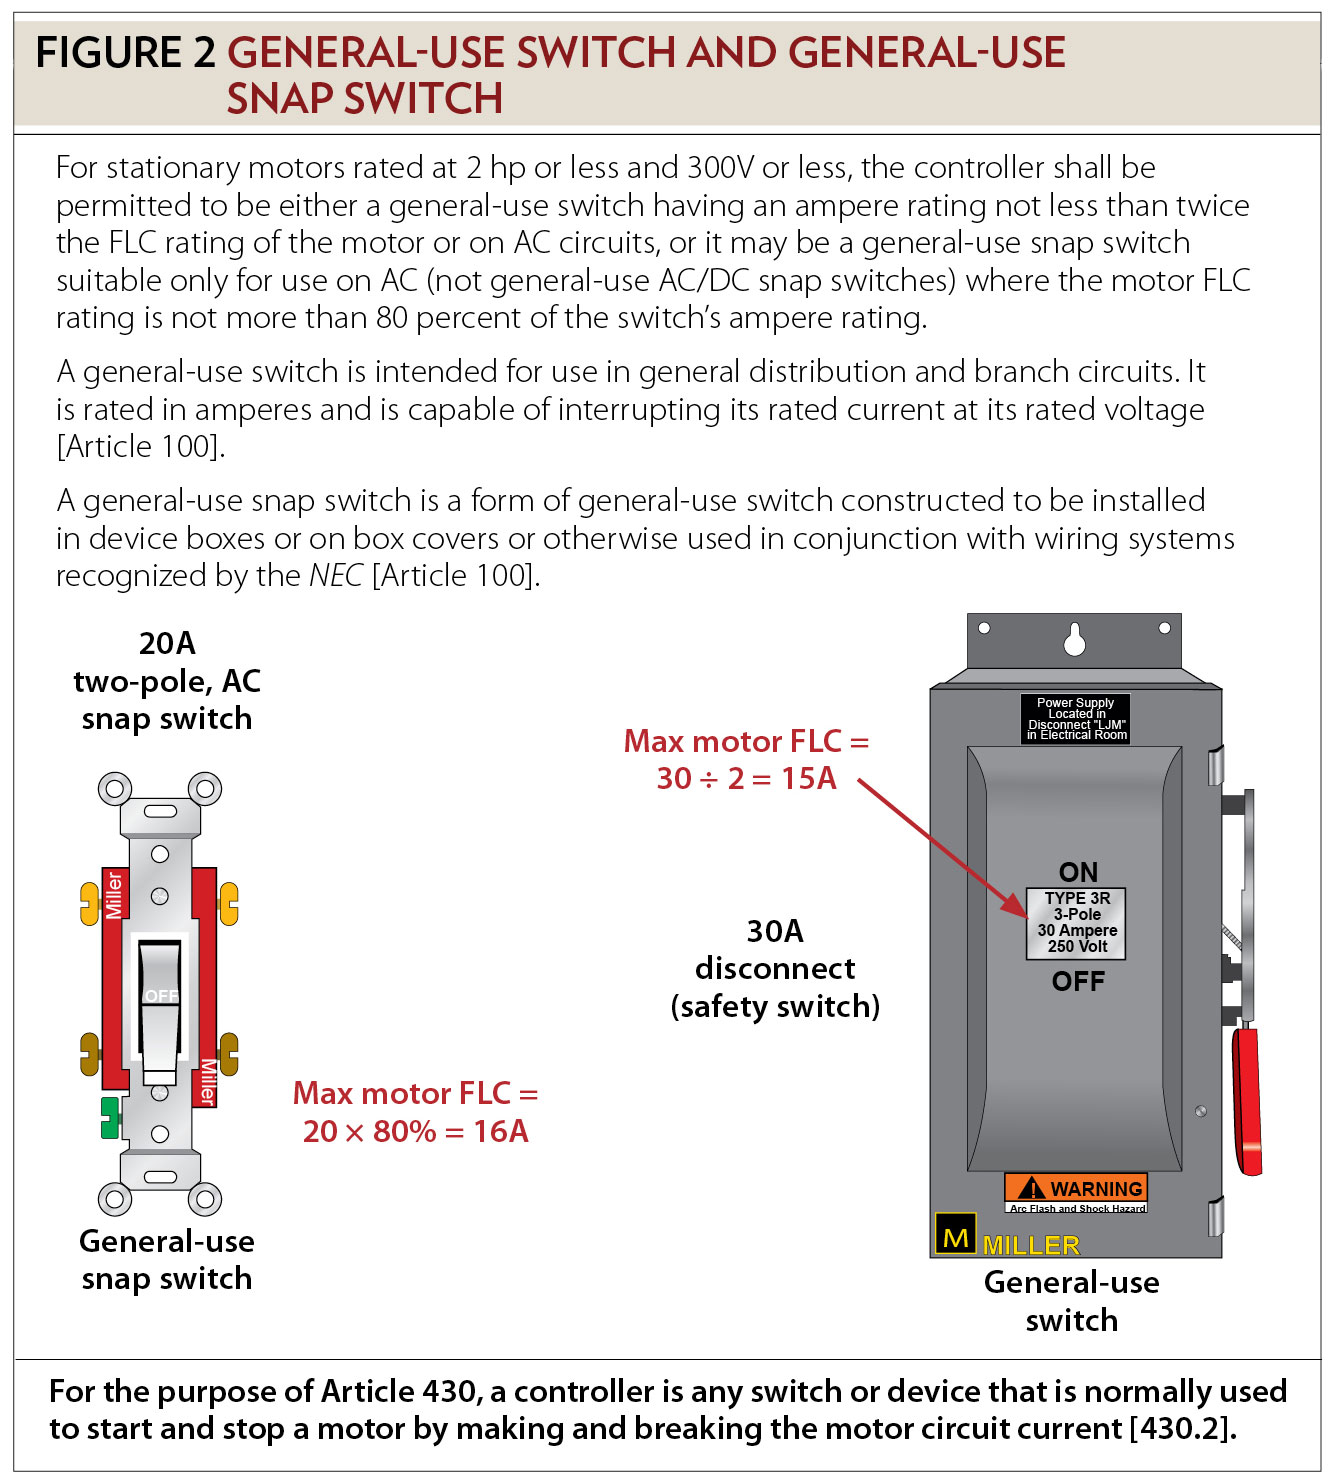 hight resolution of snap switch wiring diagram manual e book snap switch wiring diagram